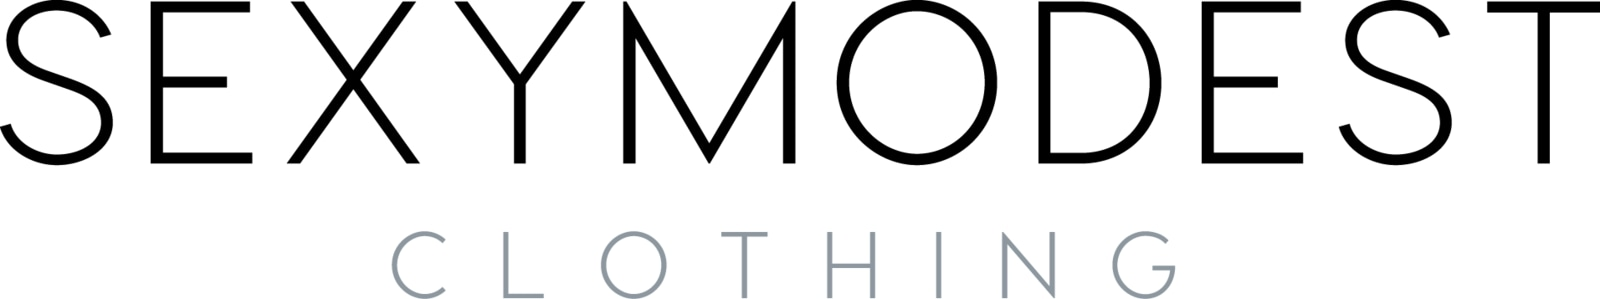 SexyModest Boutique promo codes